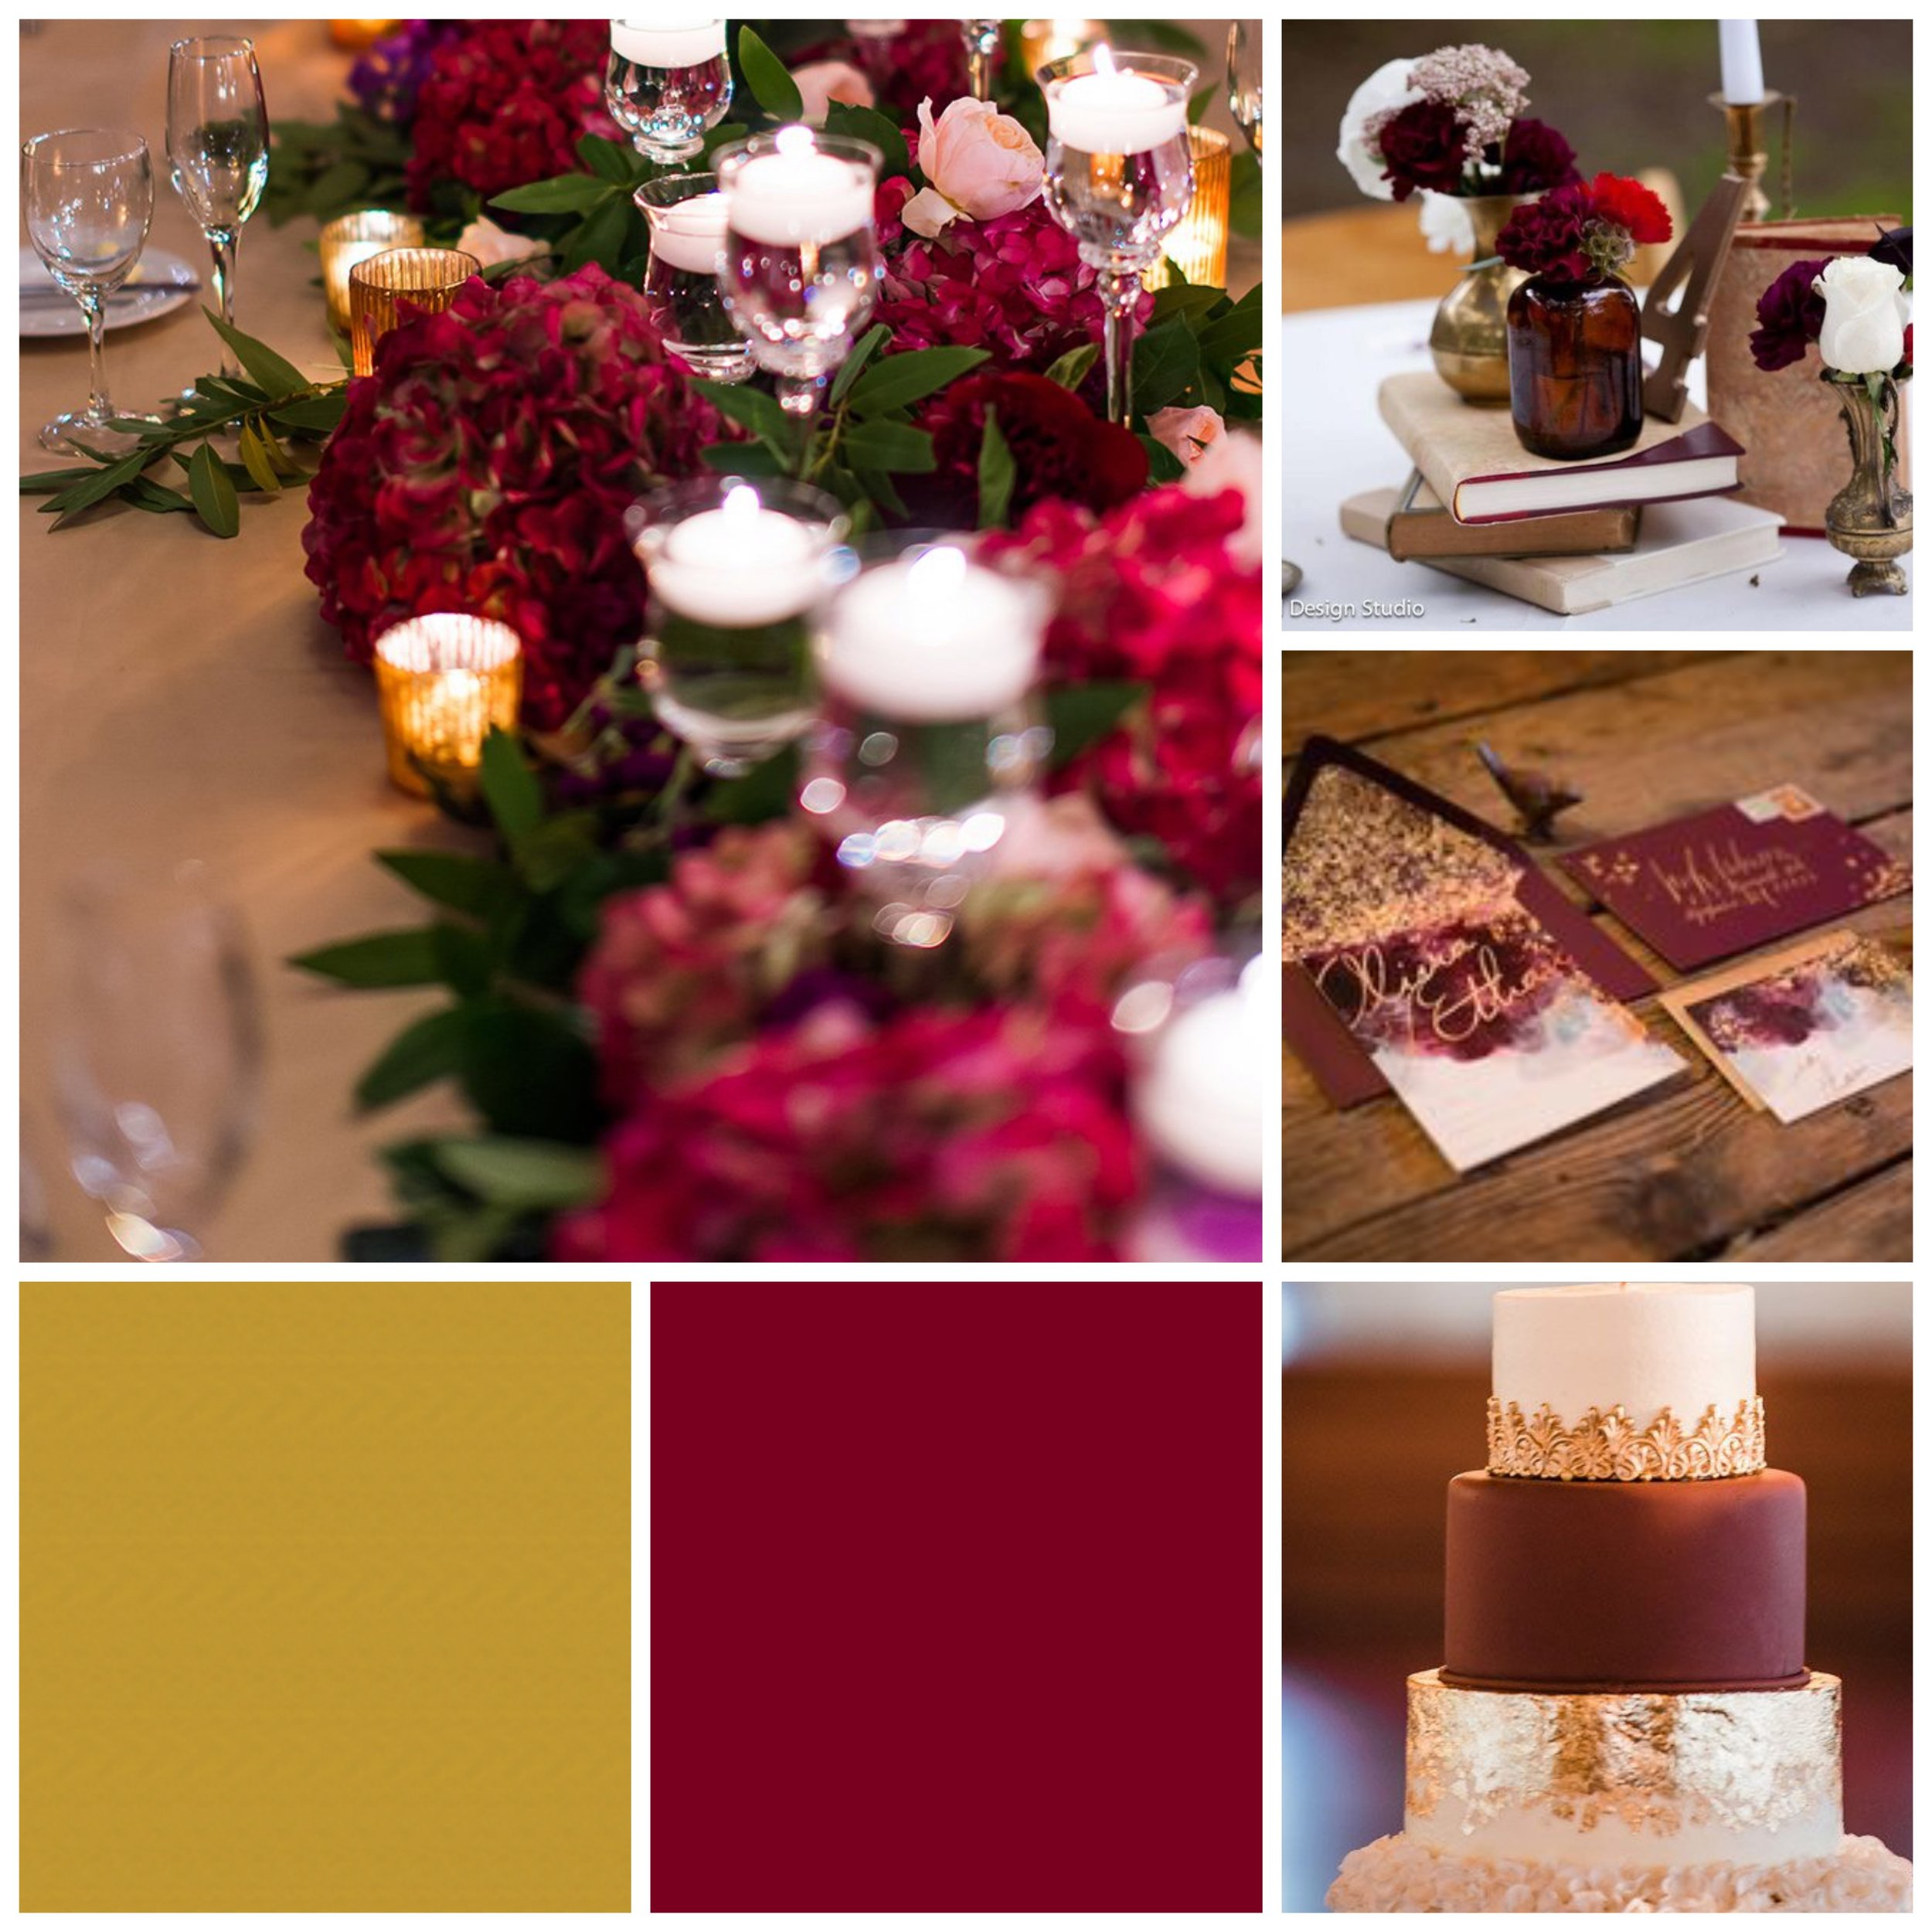 Jam & Gold Moodboard for your wedding inspiration.